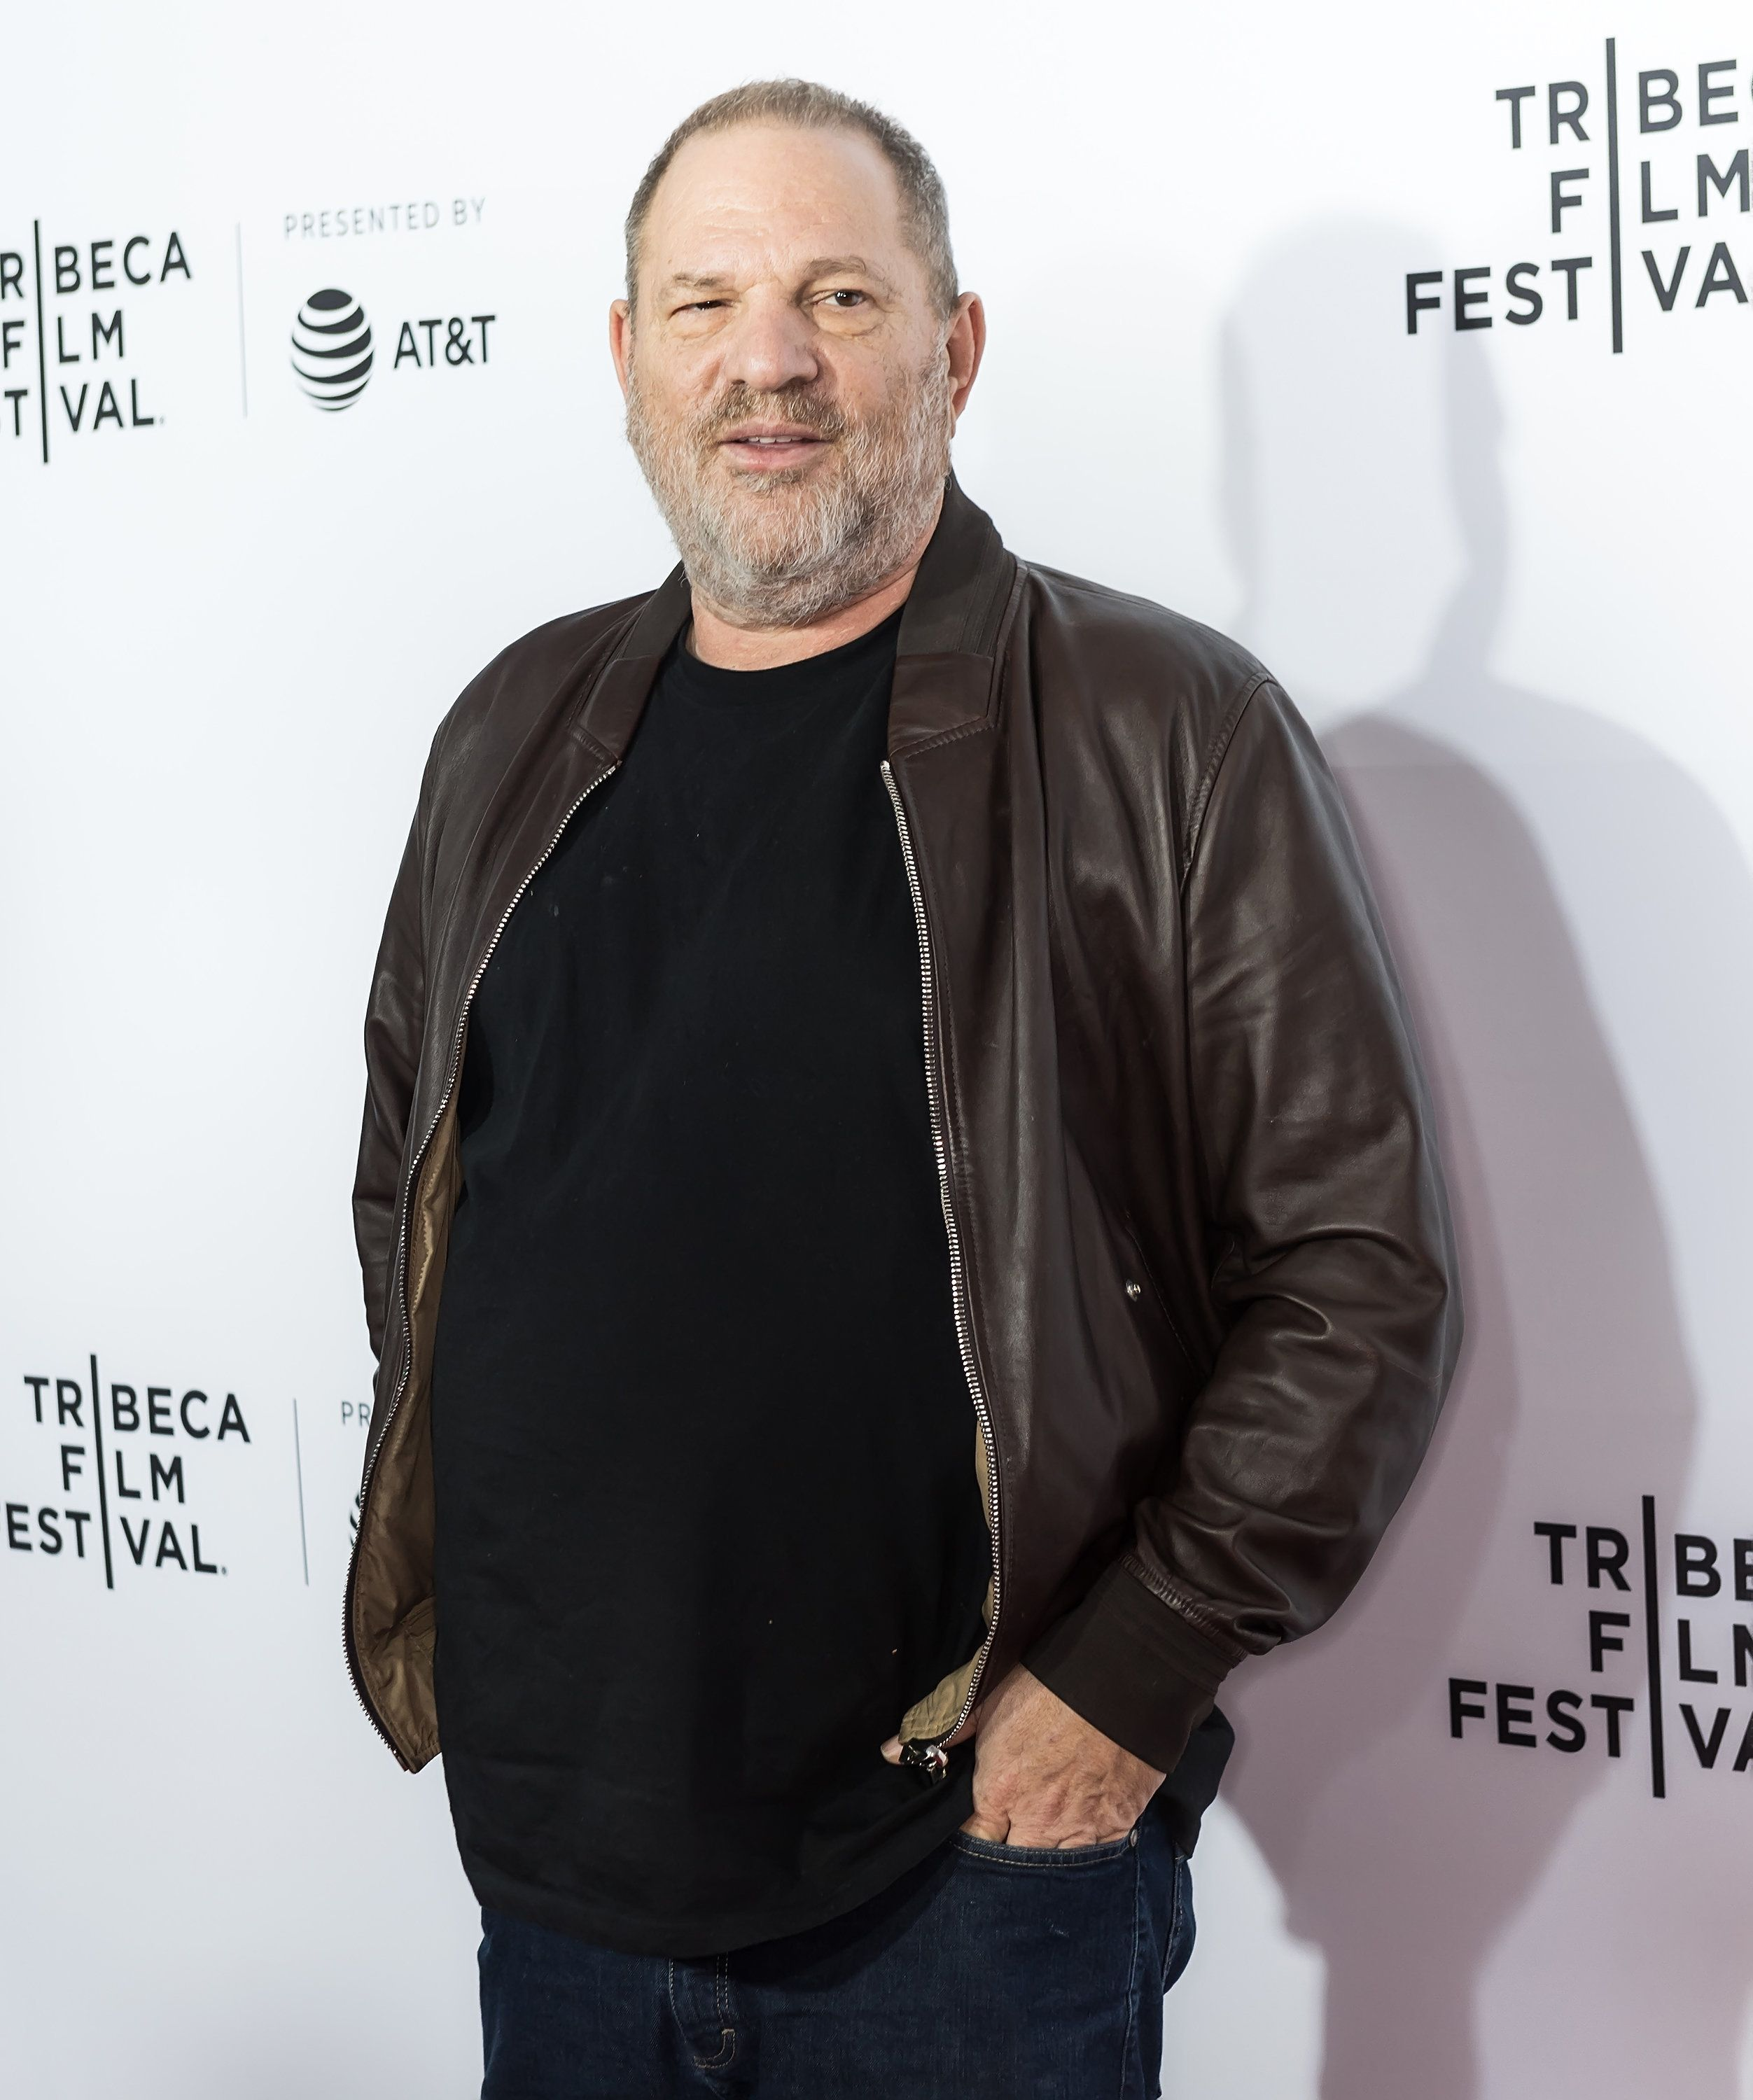 Harvey Weinstein, seen here in April 2017, has been accused by more than 80 women of a range of sexual